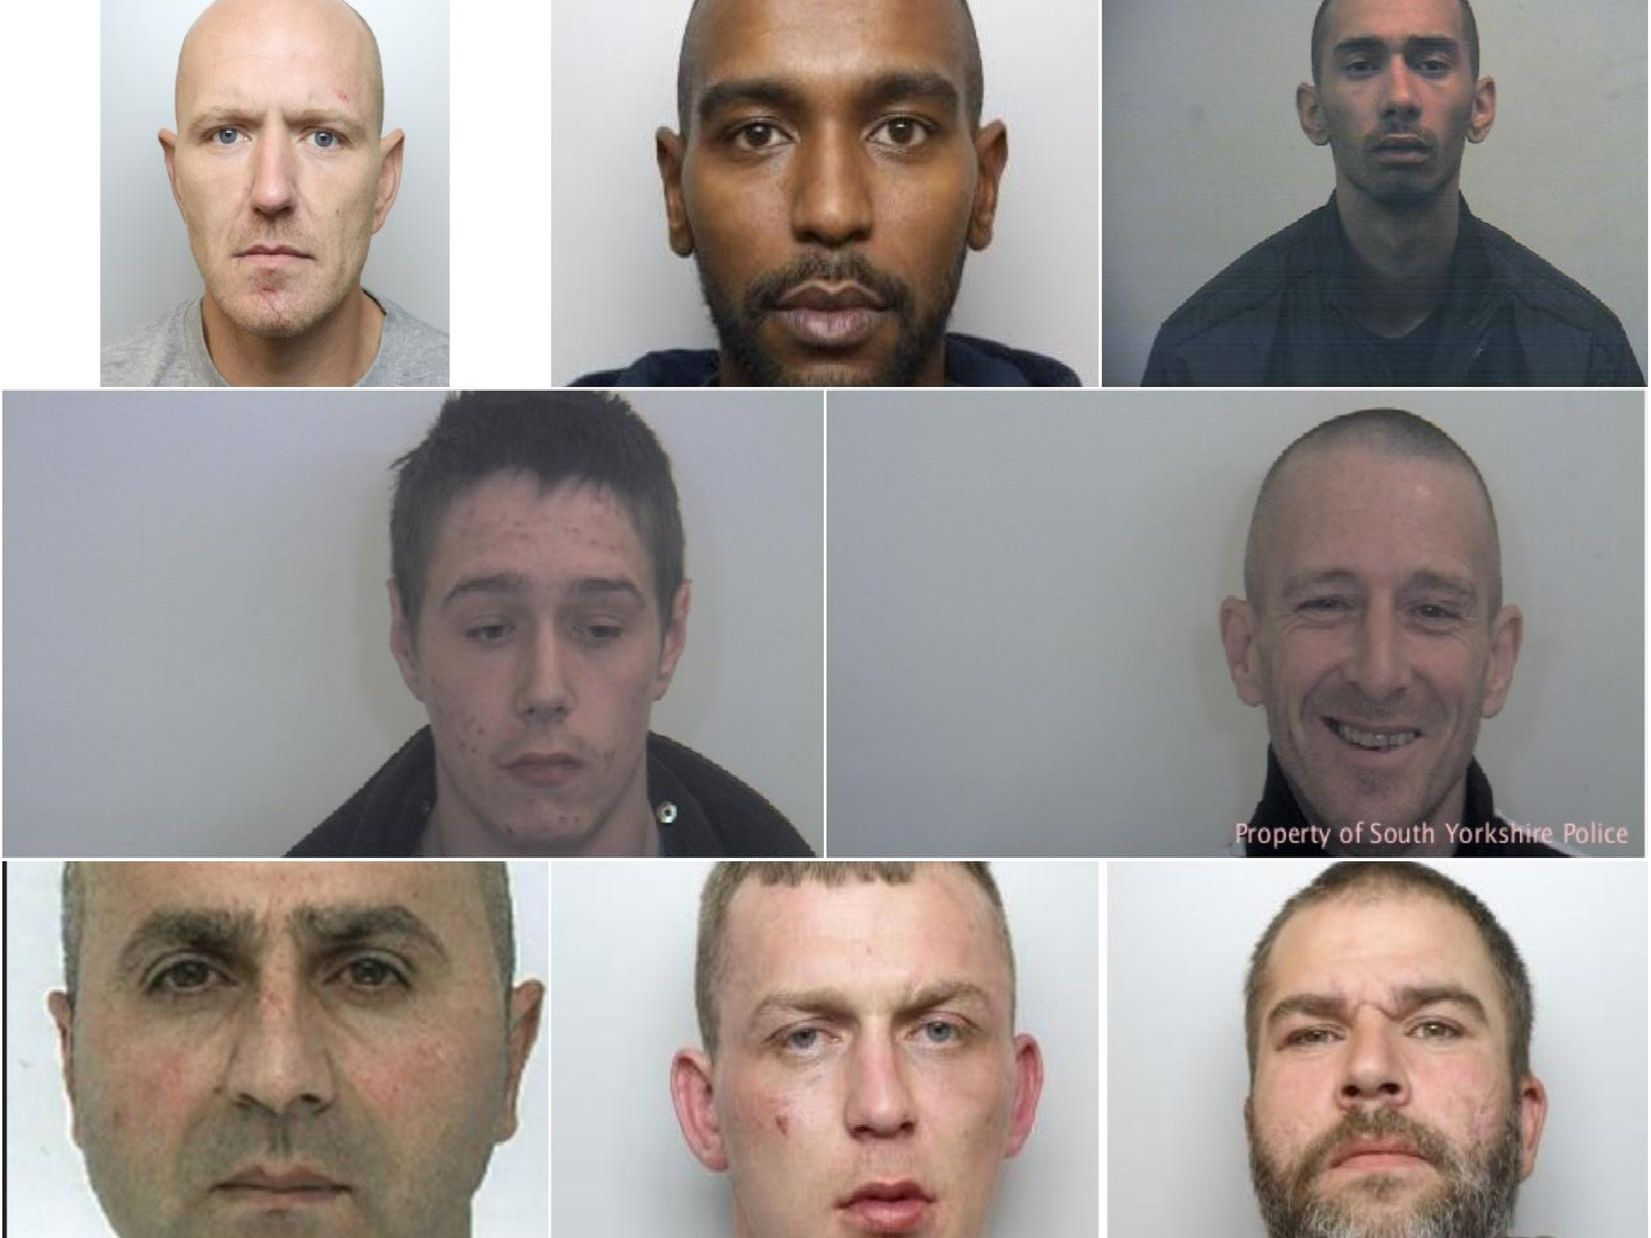 Men wanted by South Yorkshire Police